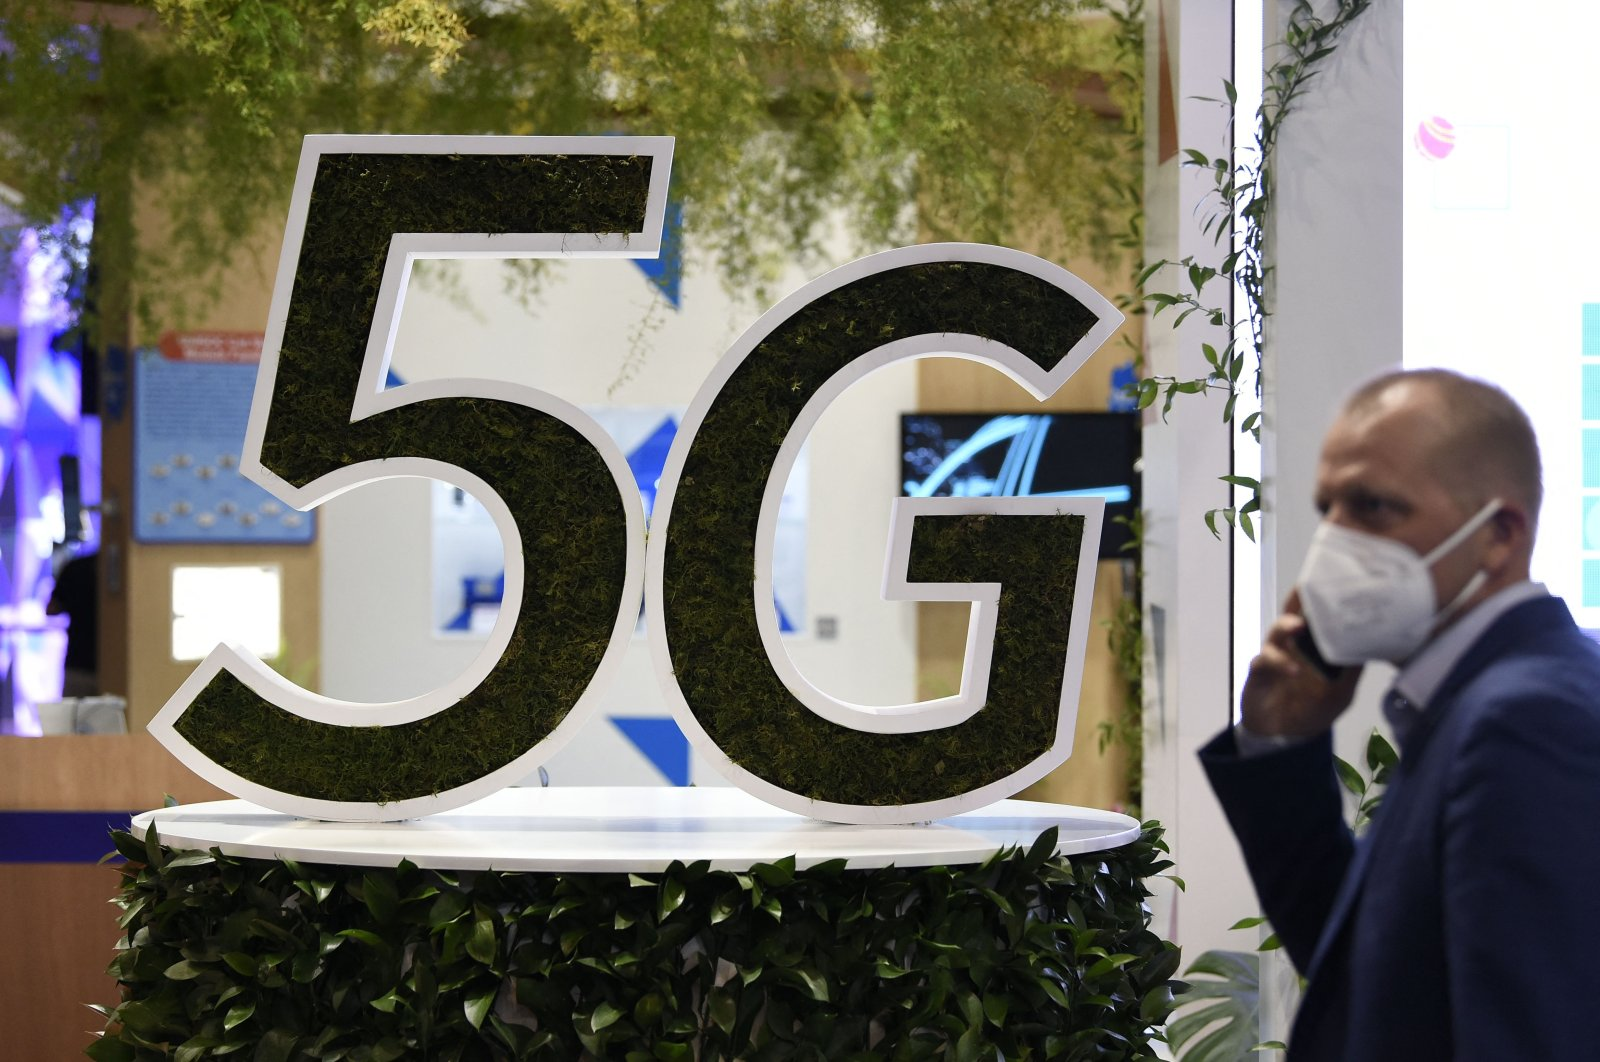 The man uses his mobile phone next to a 5G logo at the Mobile World Congress (MWC) fair in Barcelona, Spain, June 29, 2021. (AFP Photo)